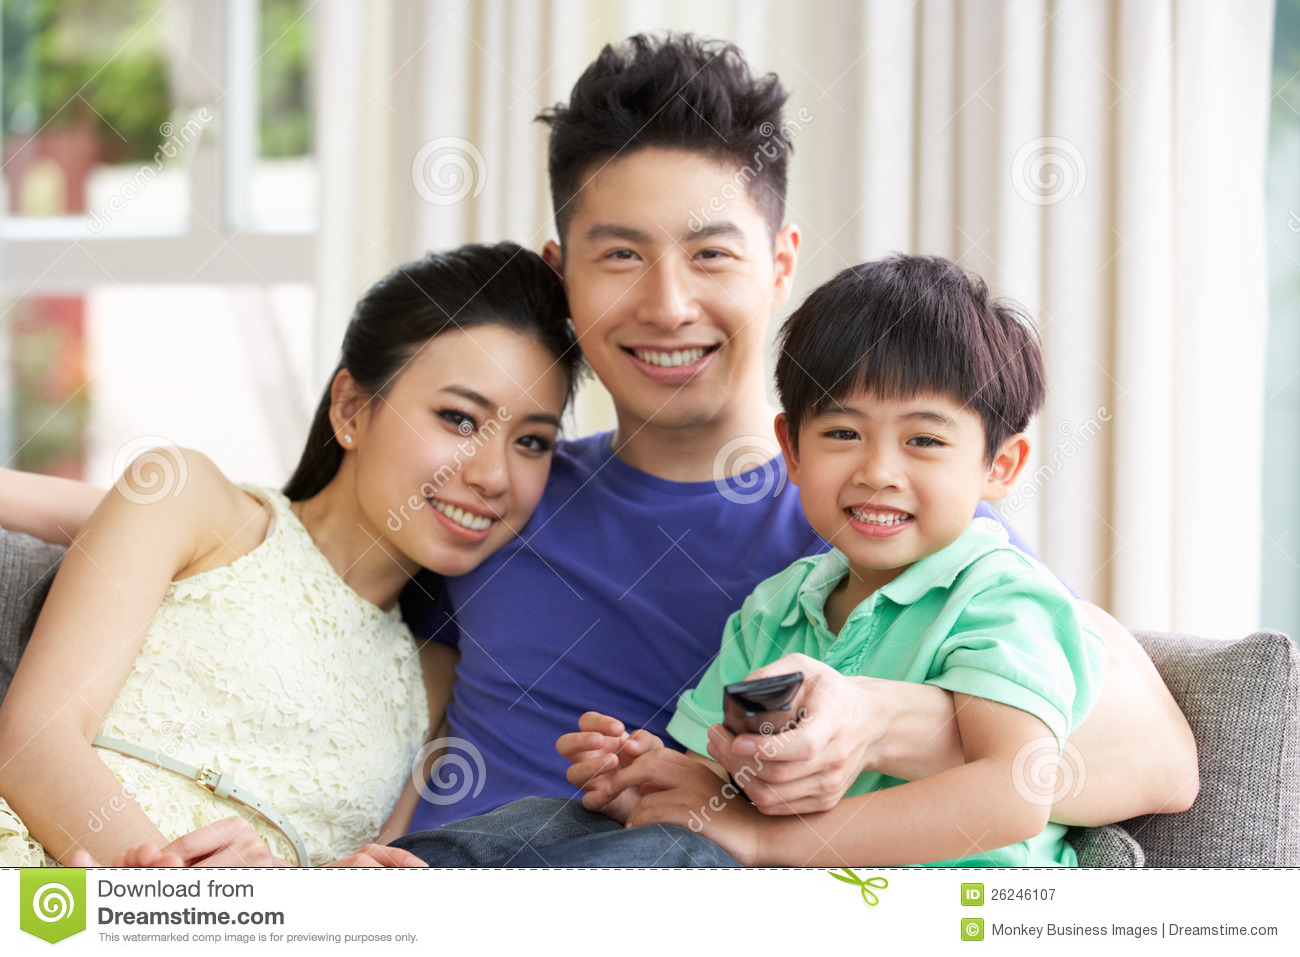 Royalty Free Stock Photography: Chinese Family Watching TV On Sofa ...